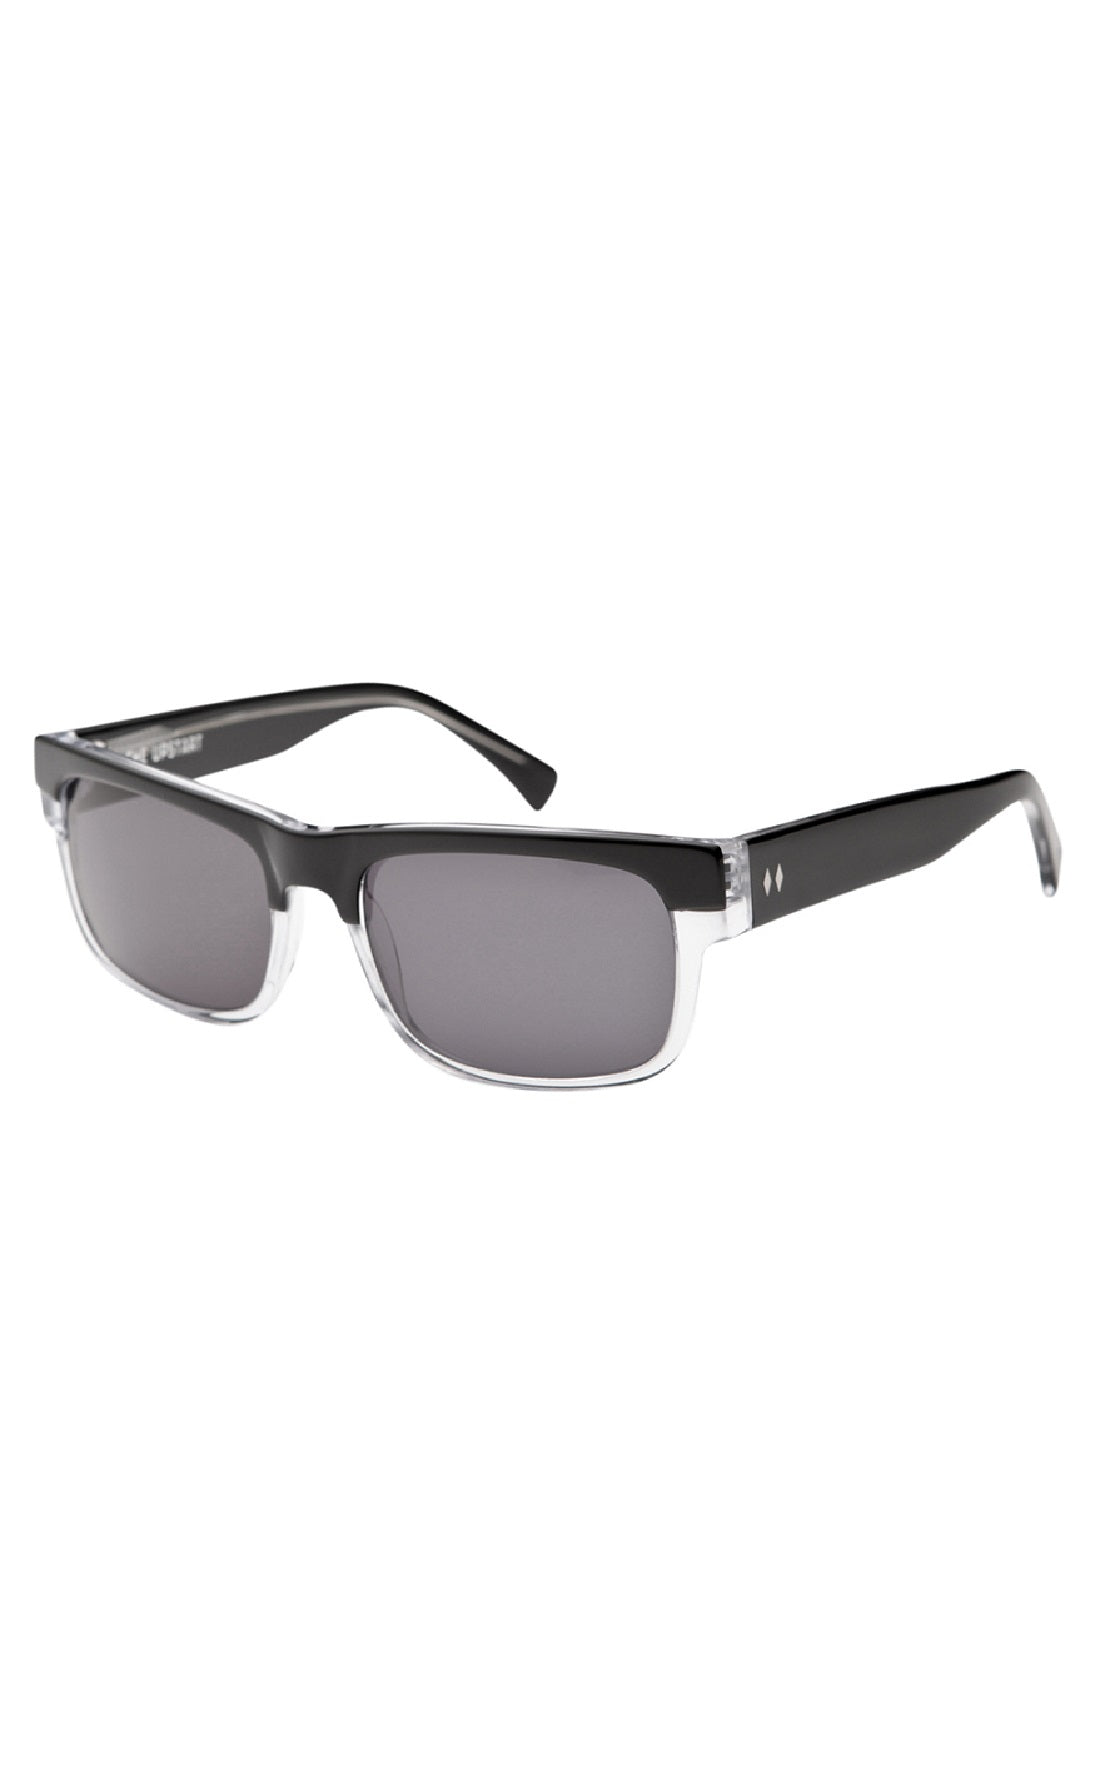 The UPSTART Sunglasses by Tres Noir - Black + Clear Frames with ...